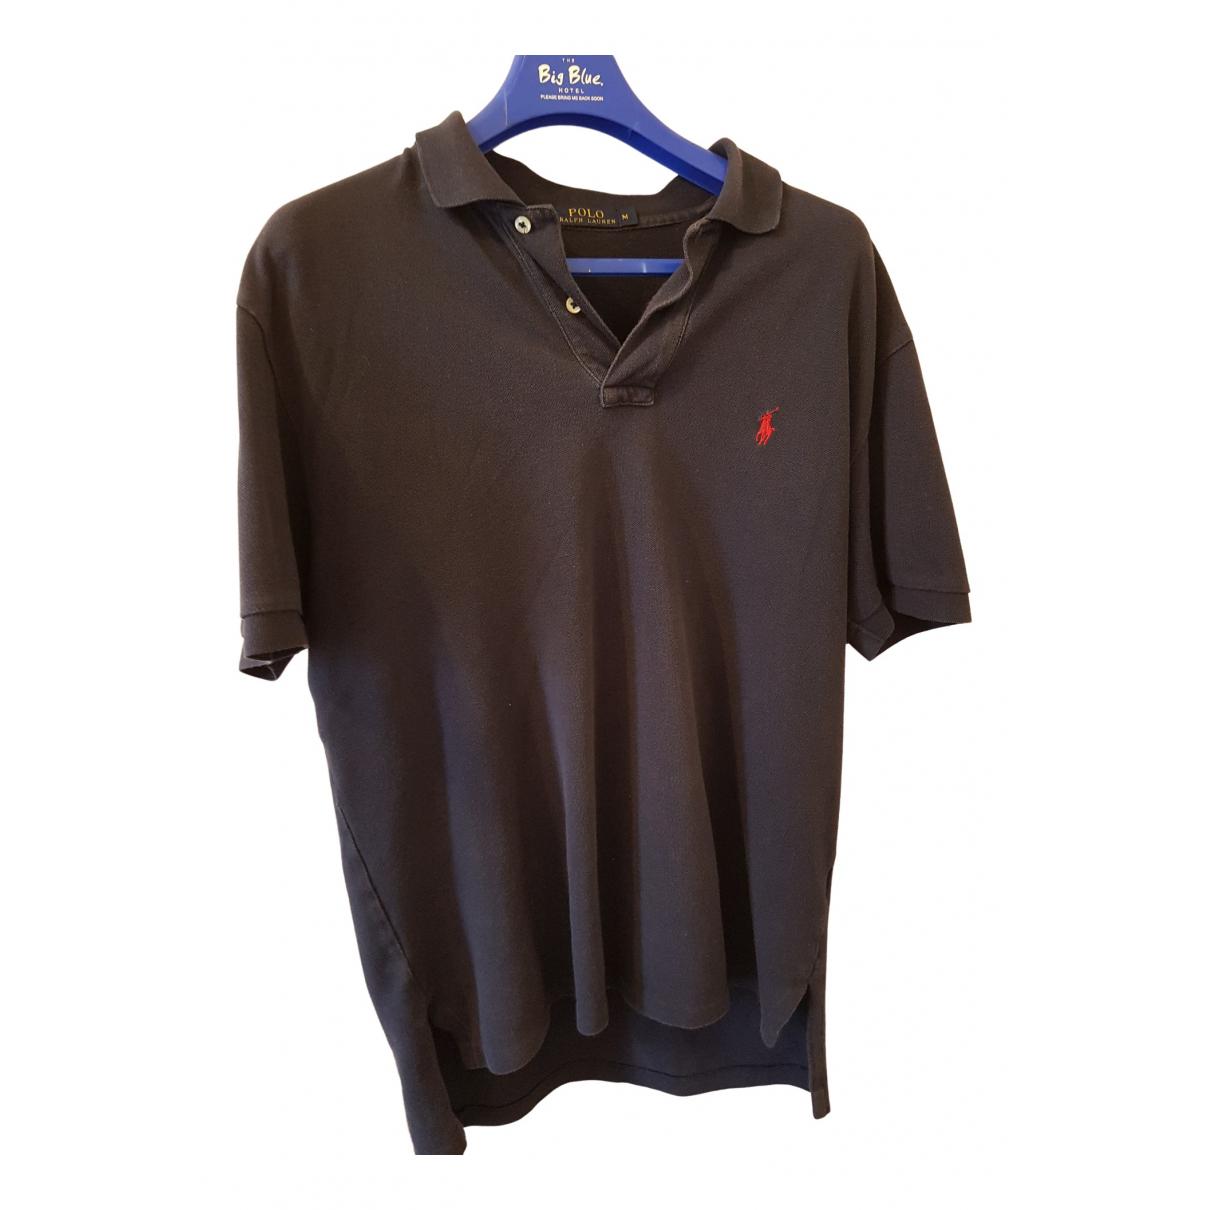 Polo Ralph Lauren Polo classique manches courtes Poloshirts in  Marine Baumwolle